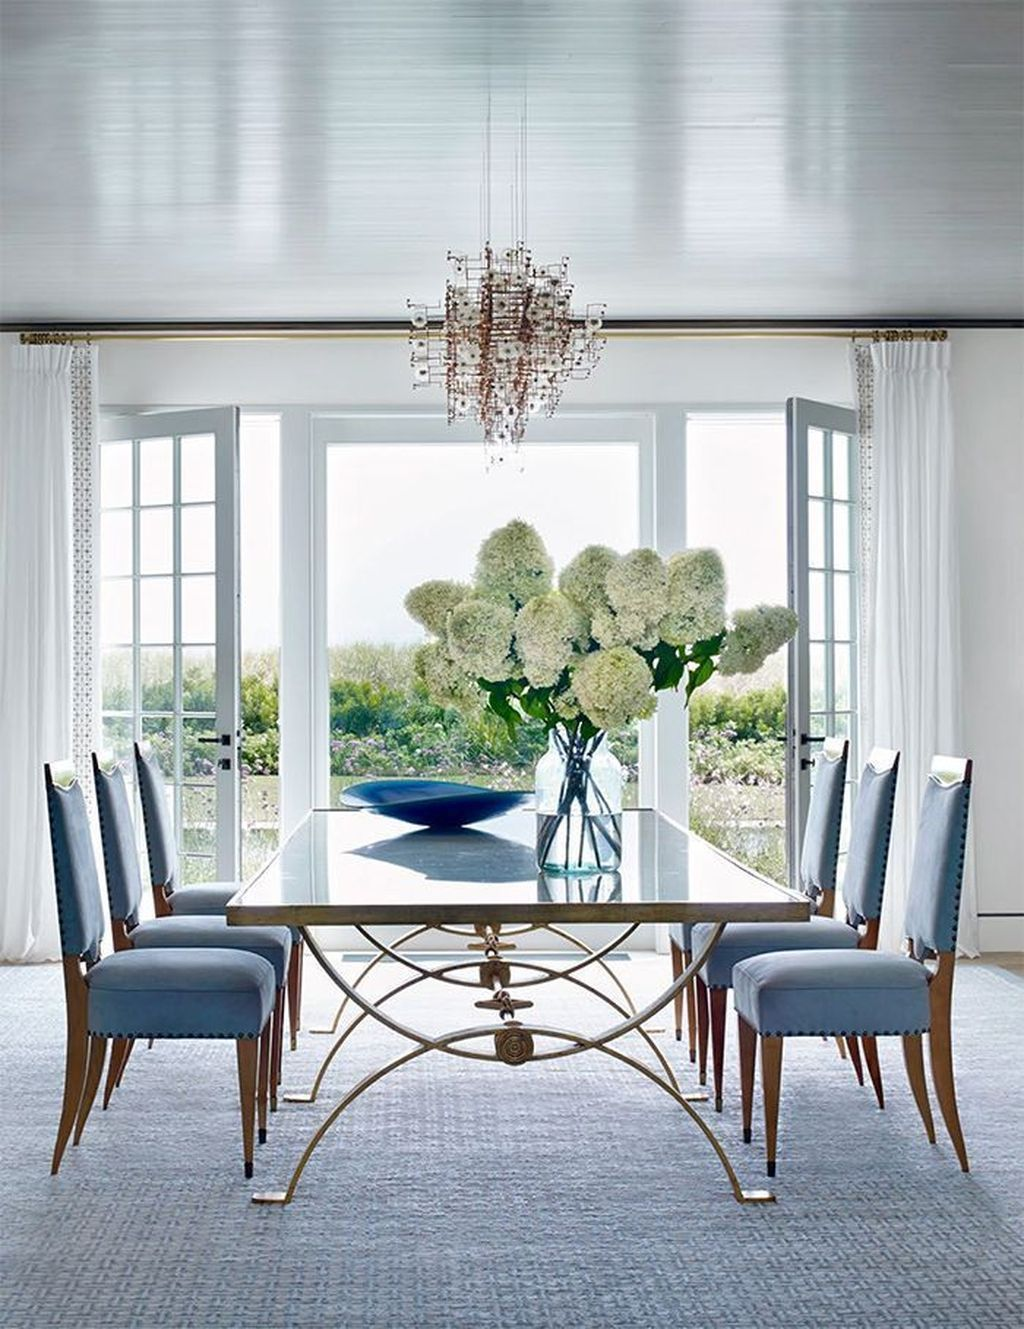 Inspiring Dining Room Design Ideas 01